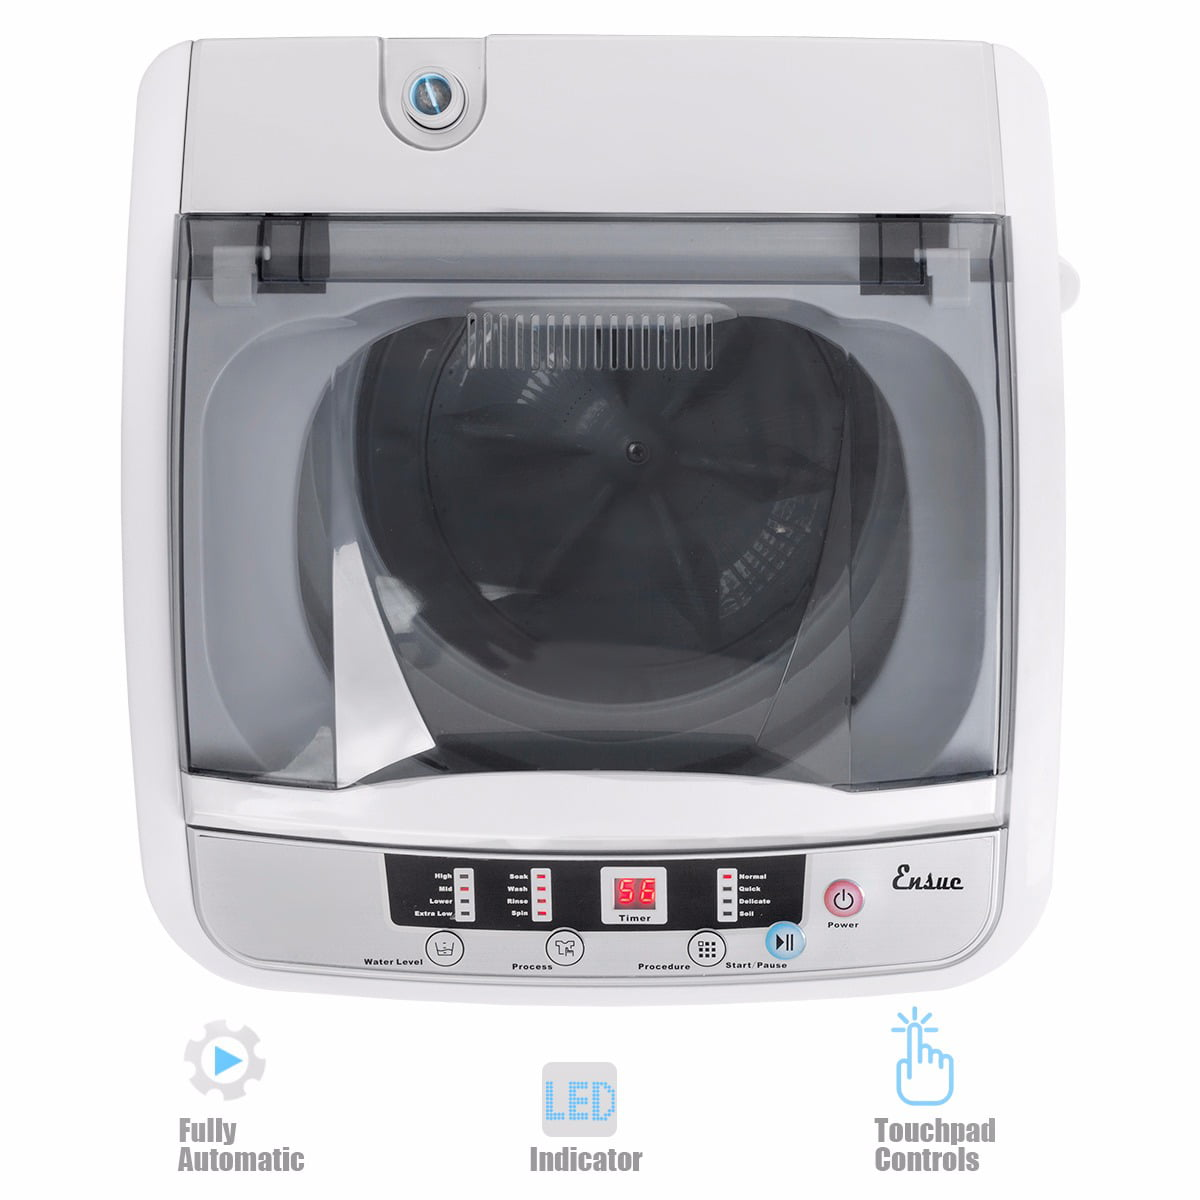 Portable Washer Dryer Combo For Apartments - Interior Design